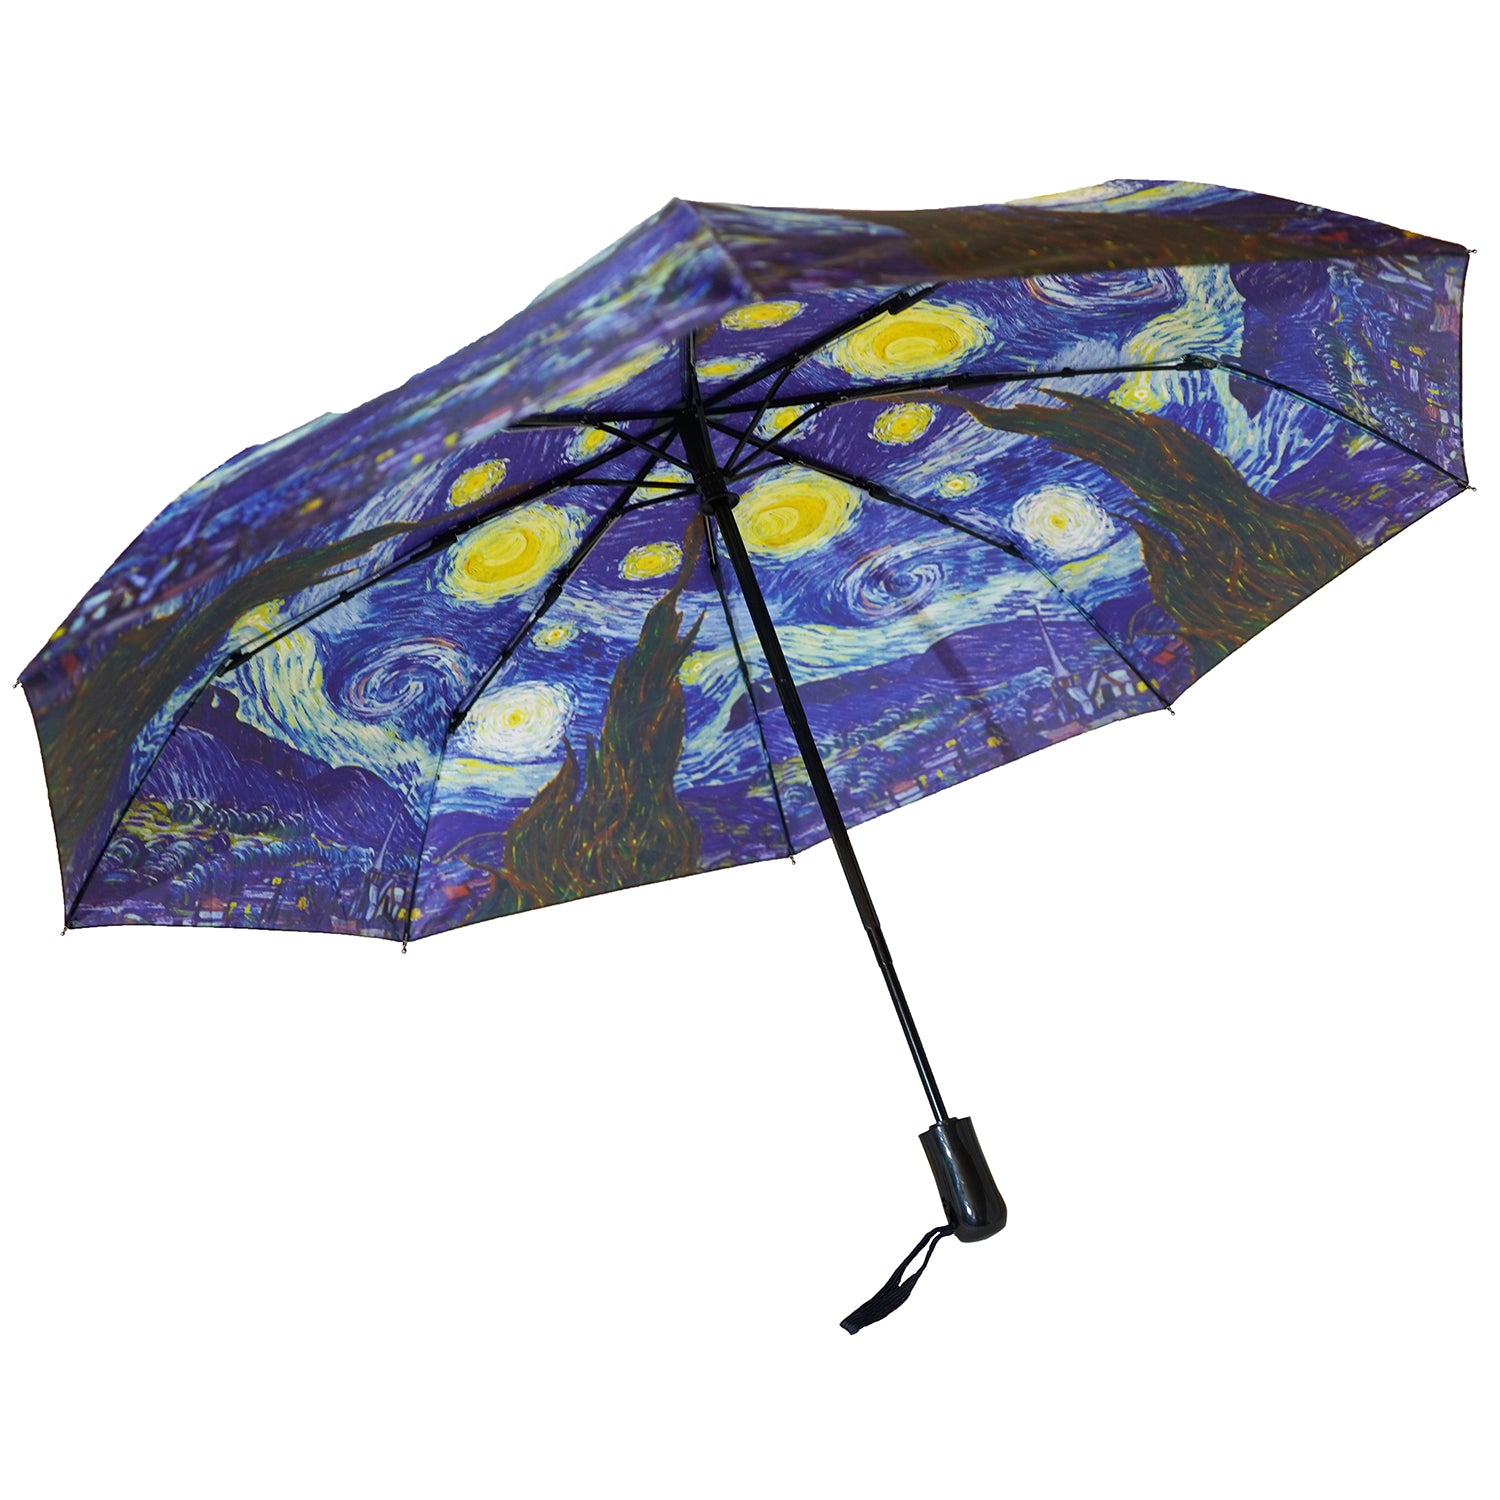 "Van Gogh Starry Night 12"" Compact Collapsible Auto Open and Close Premium Umbrella"